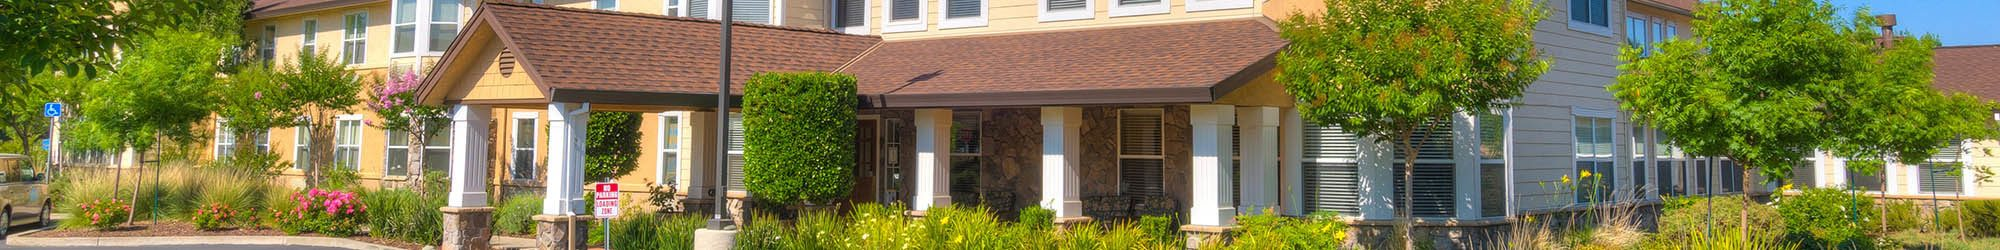 Looking for senior living for yourself at The Meadows - Assisted Living